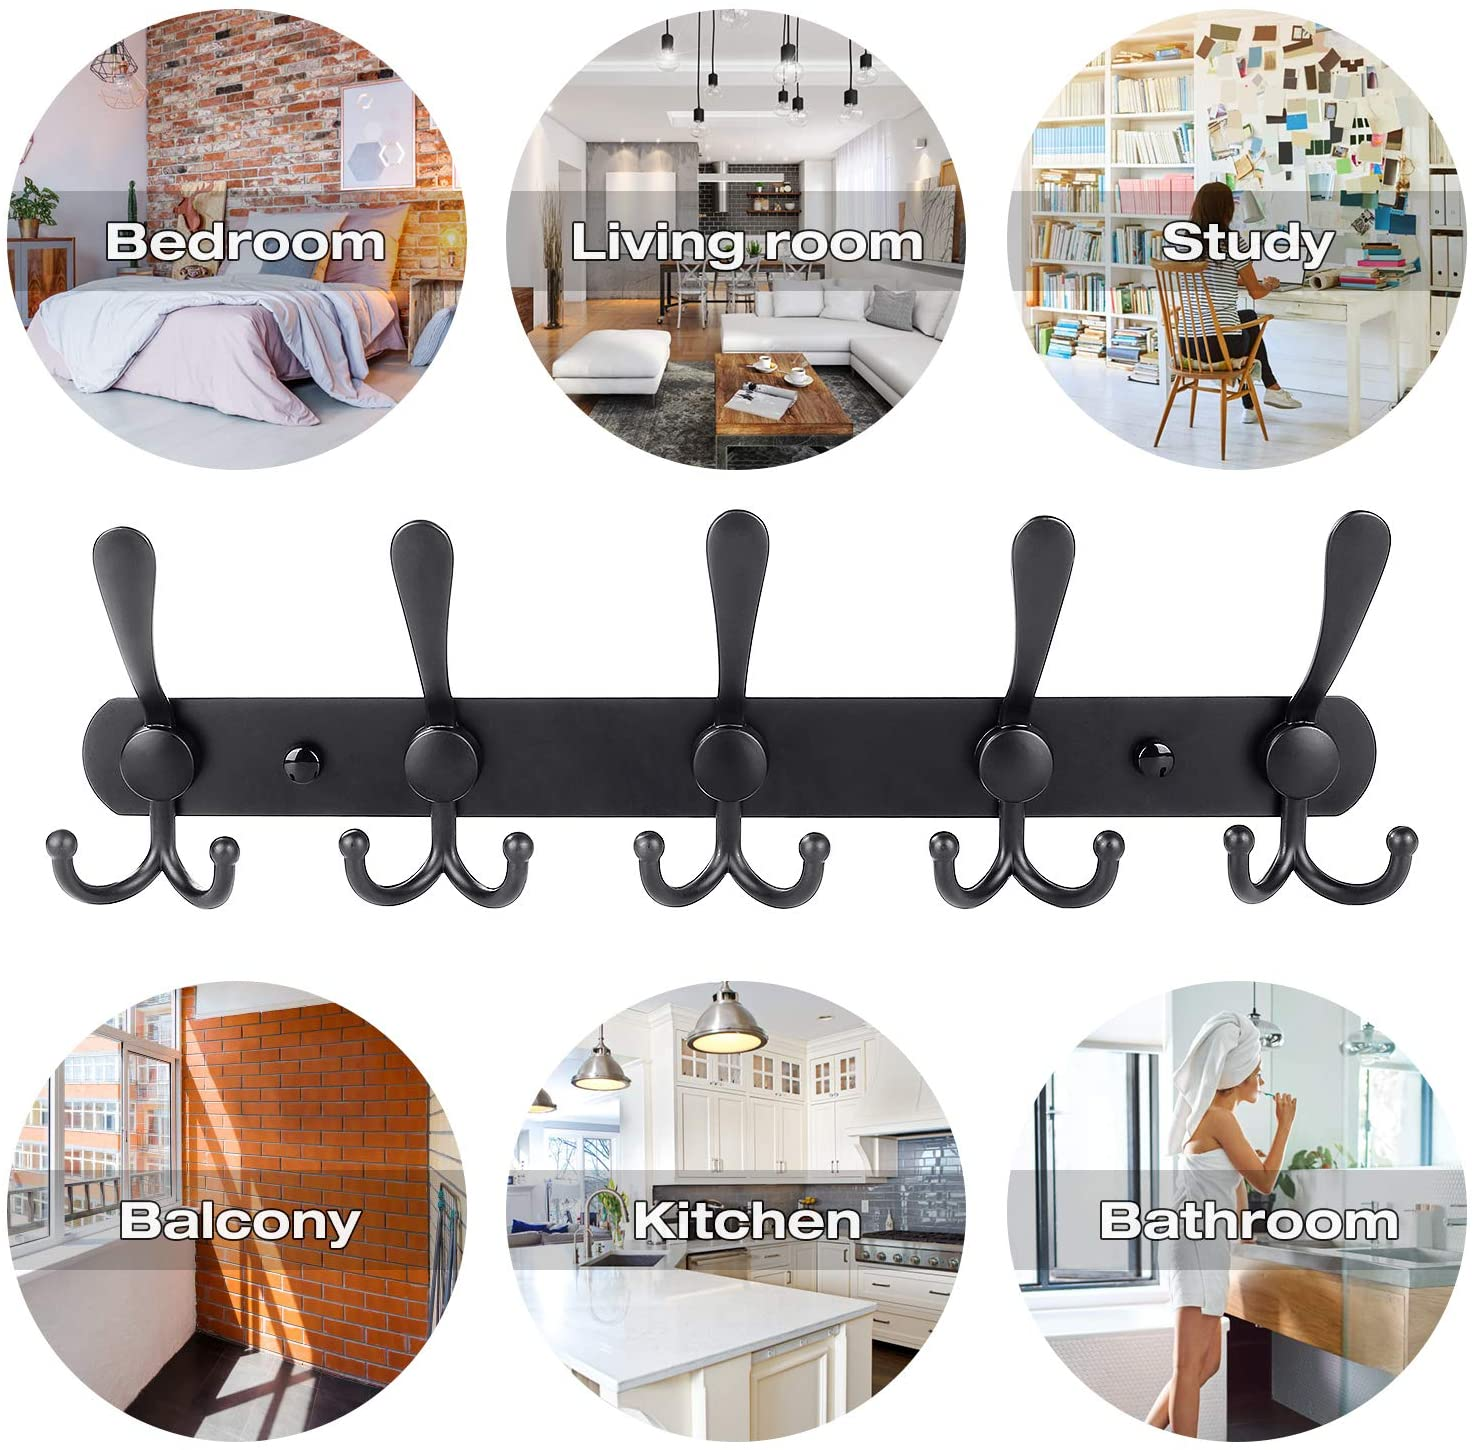 Wall Mounted Coat Rack Hooks With 5 Metal Double Hooks 16 Inch Matte Black Stainless Steel Hook Rail Organizer For Hanging